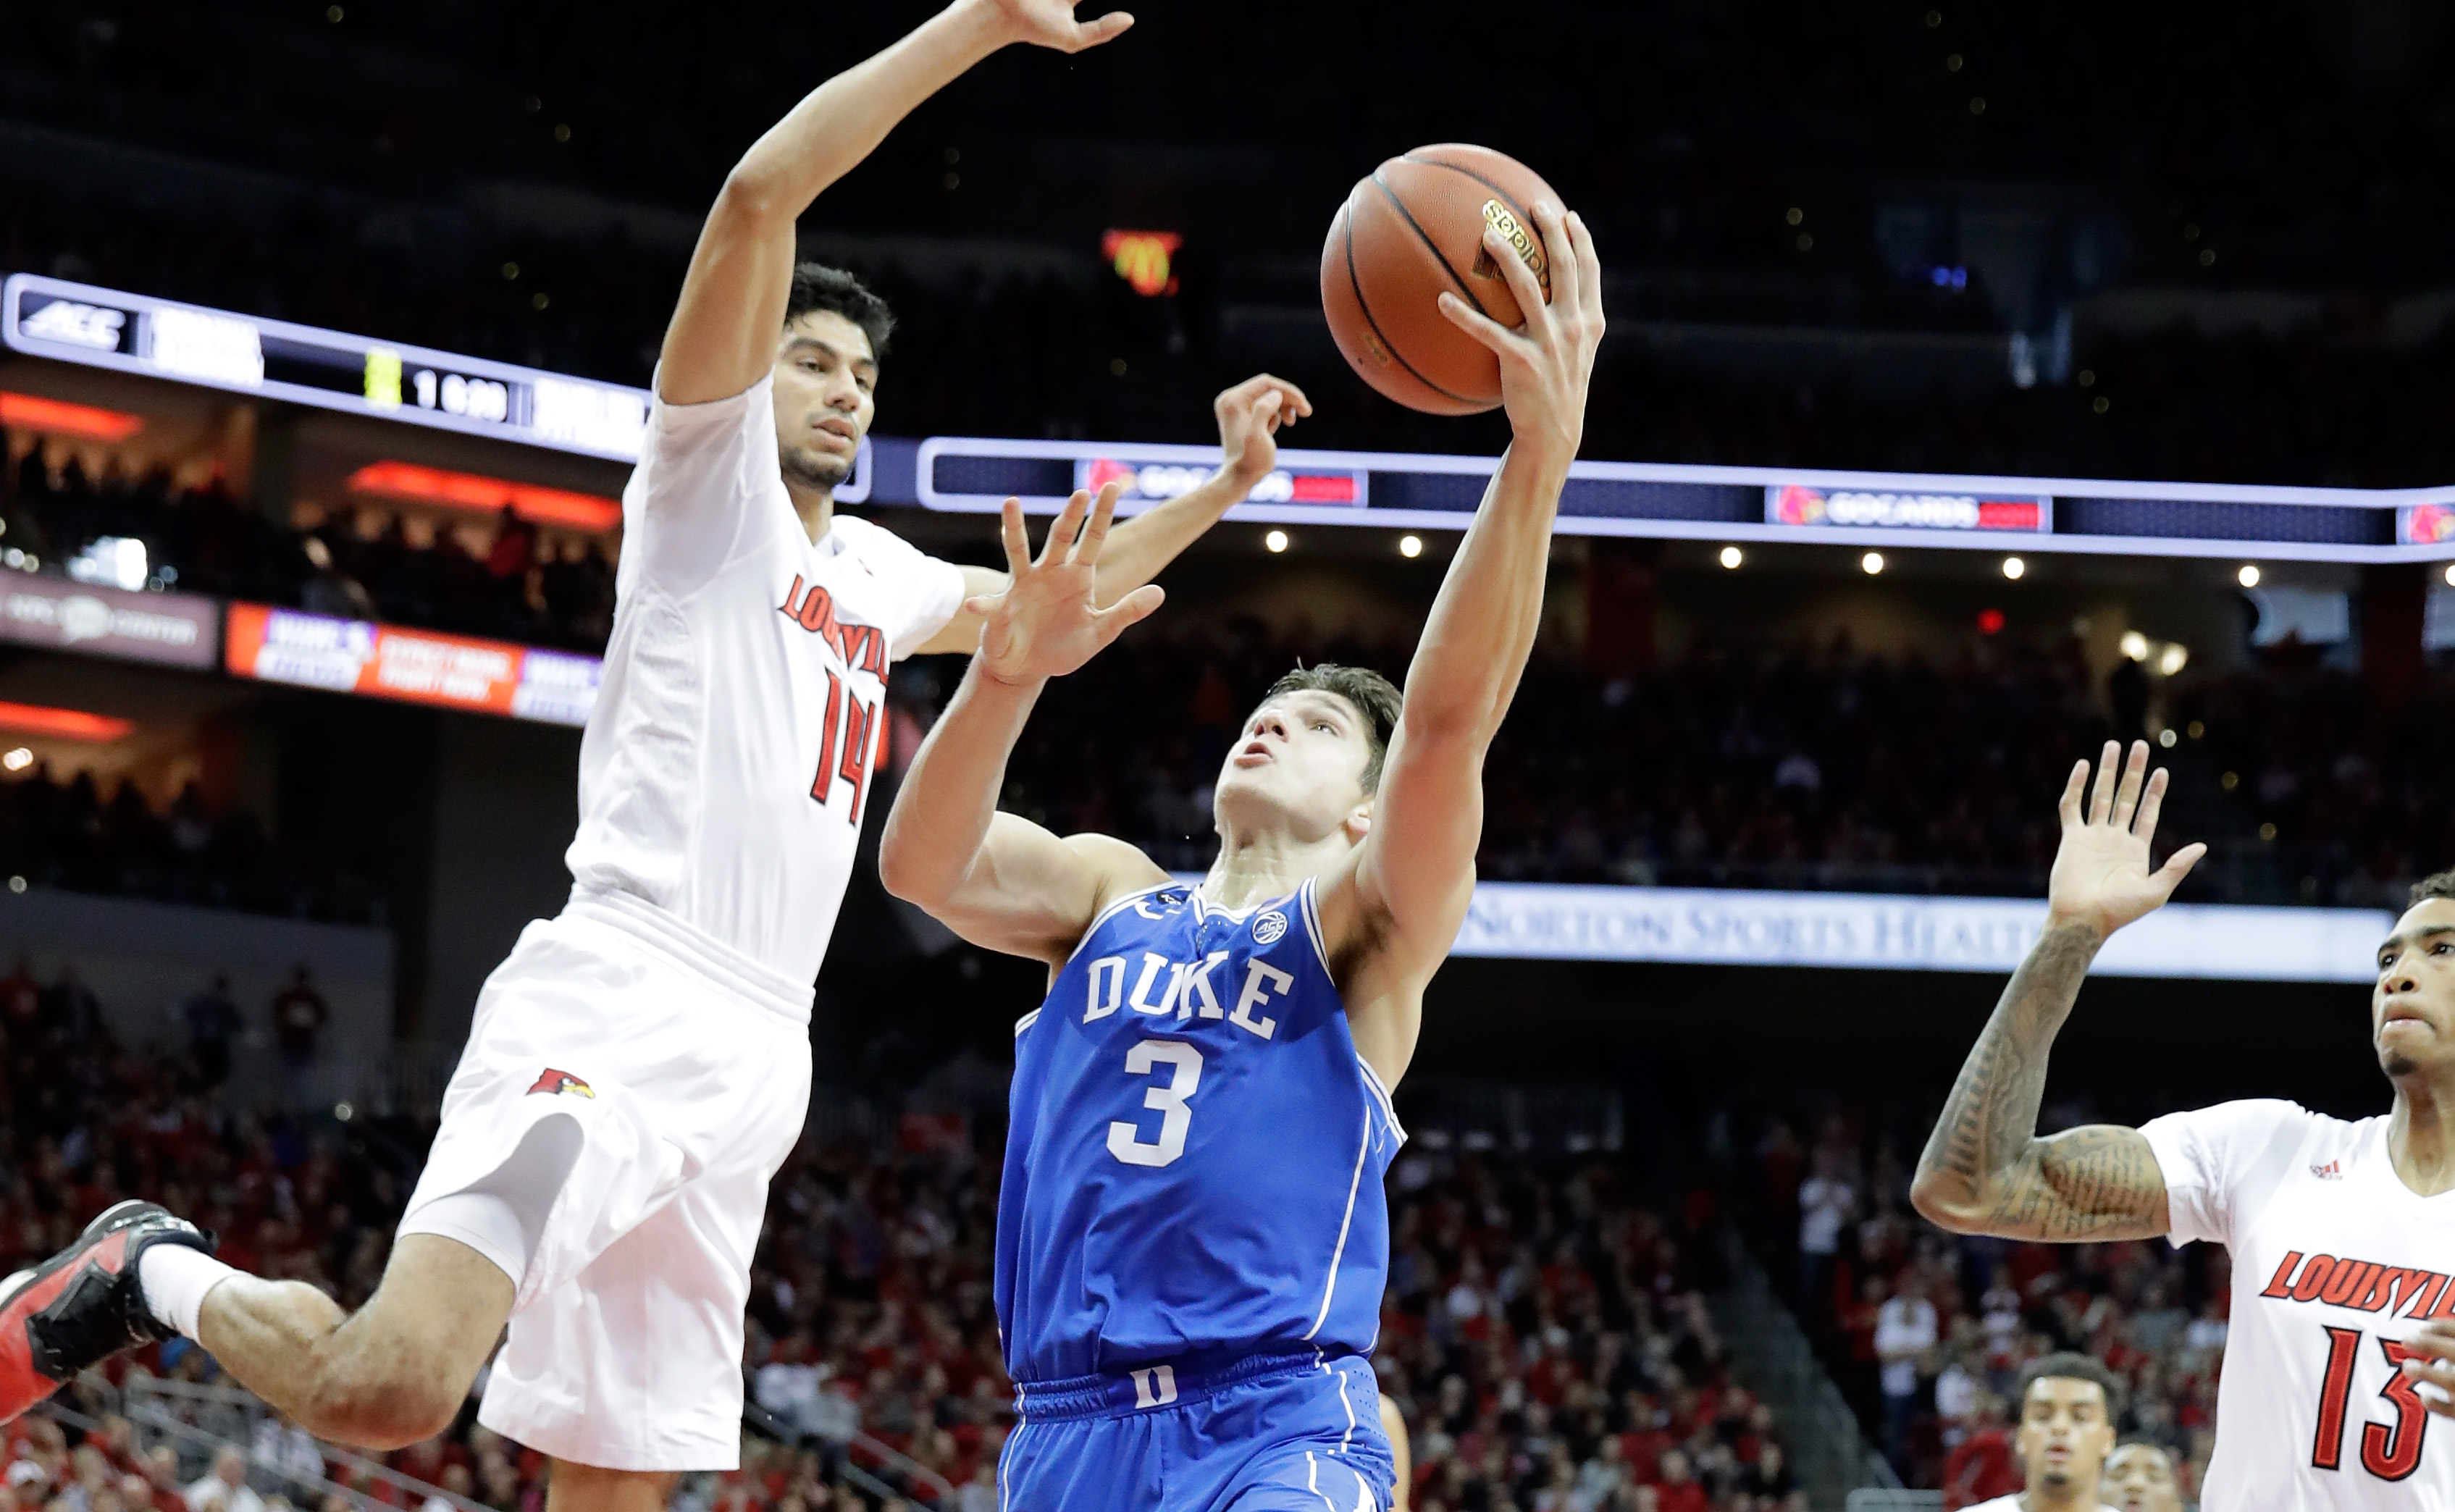 LOUISVILLE, KY - JANUARY 14:  Grayson Allen #3 of the Duke Blue Devils shoots the ball during the game against the Louisville Cardinals at KFC YUM! Center on January 14, 2017 in Louisville, Kentucky.  (Photo by Andy Lyons/Getty Images)